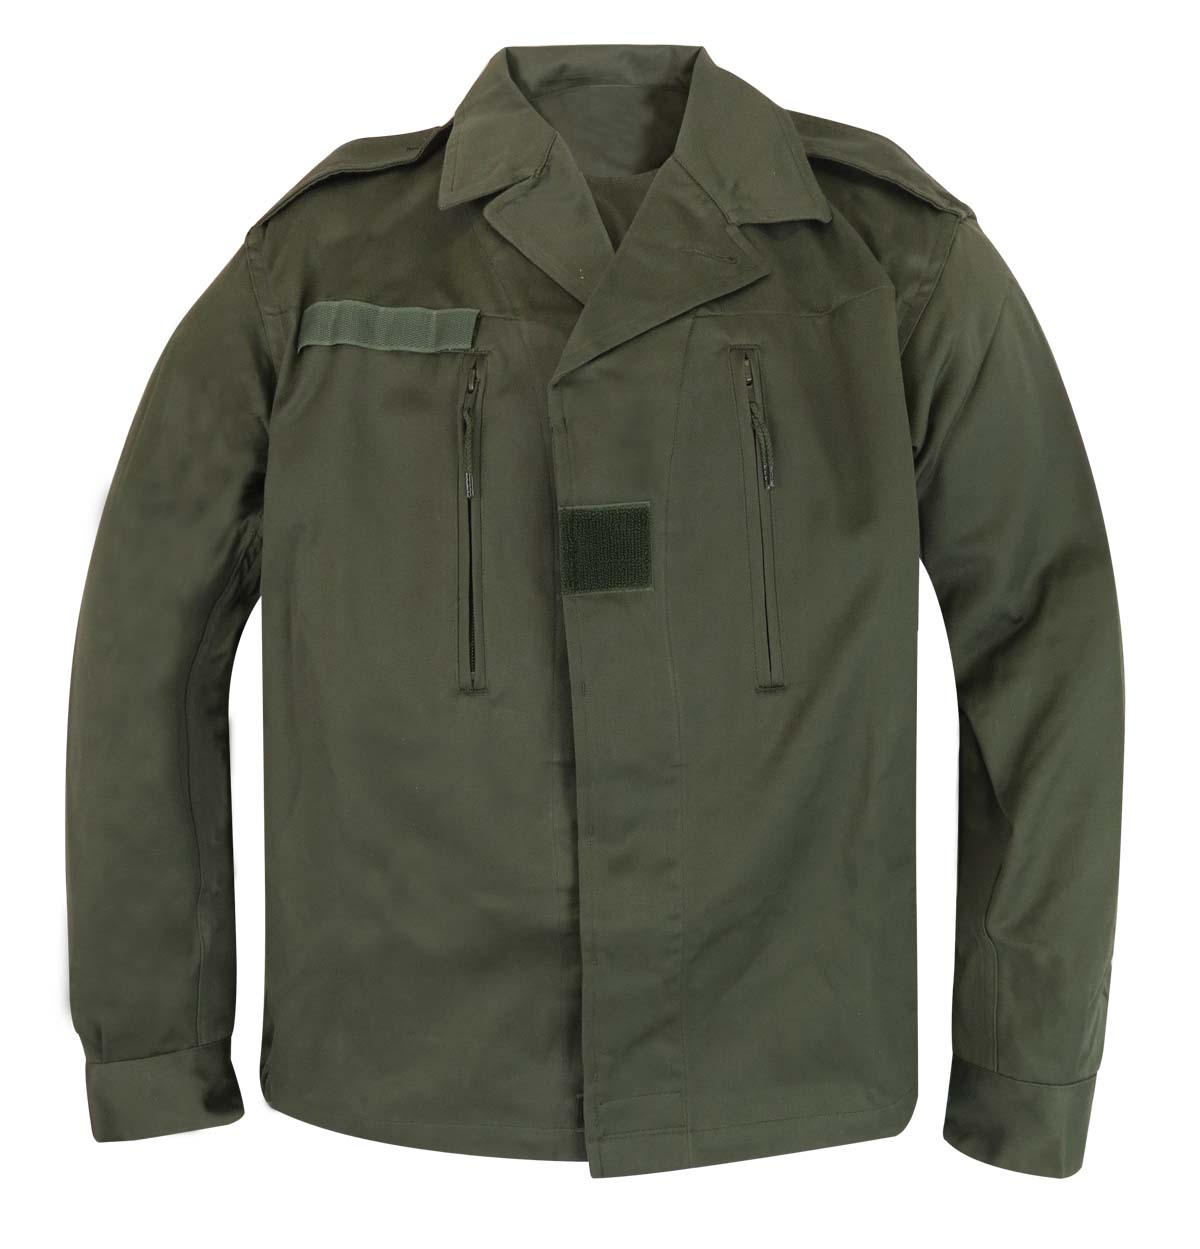 French F2 Lightweight Jacket by French Army